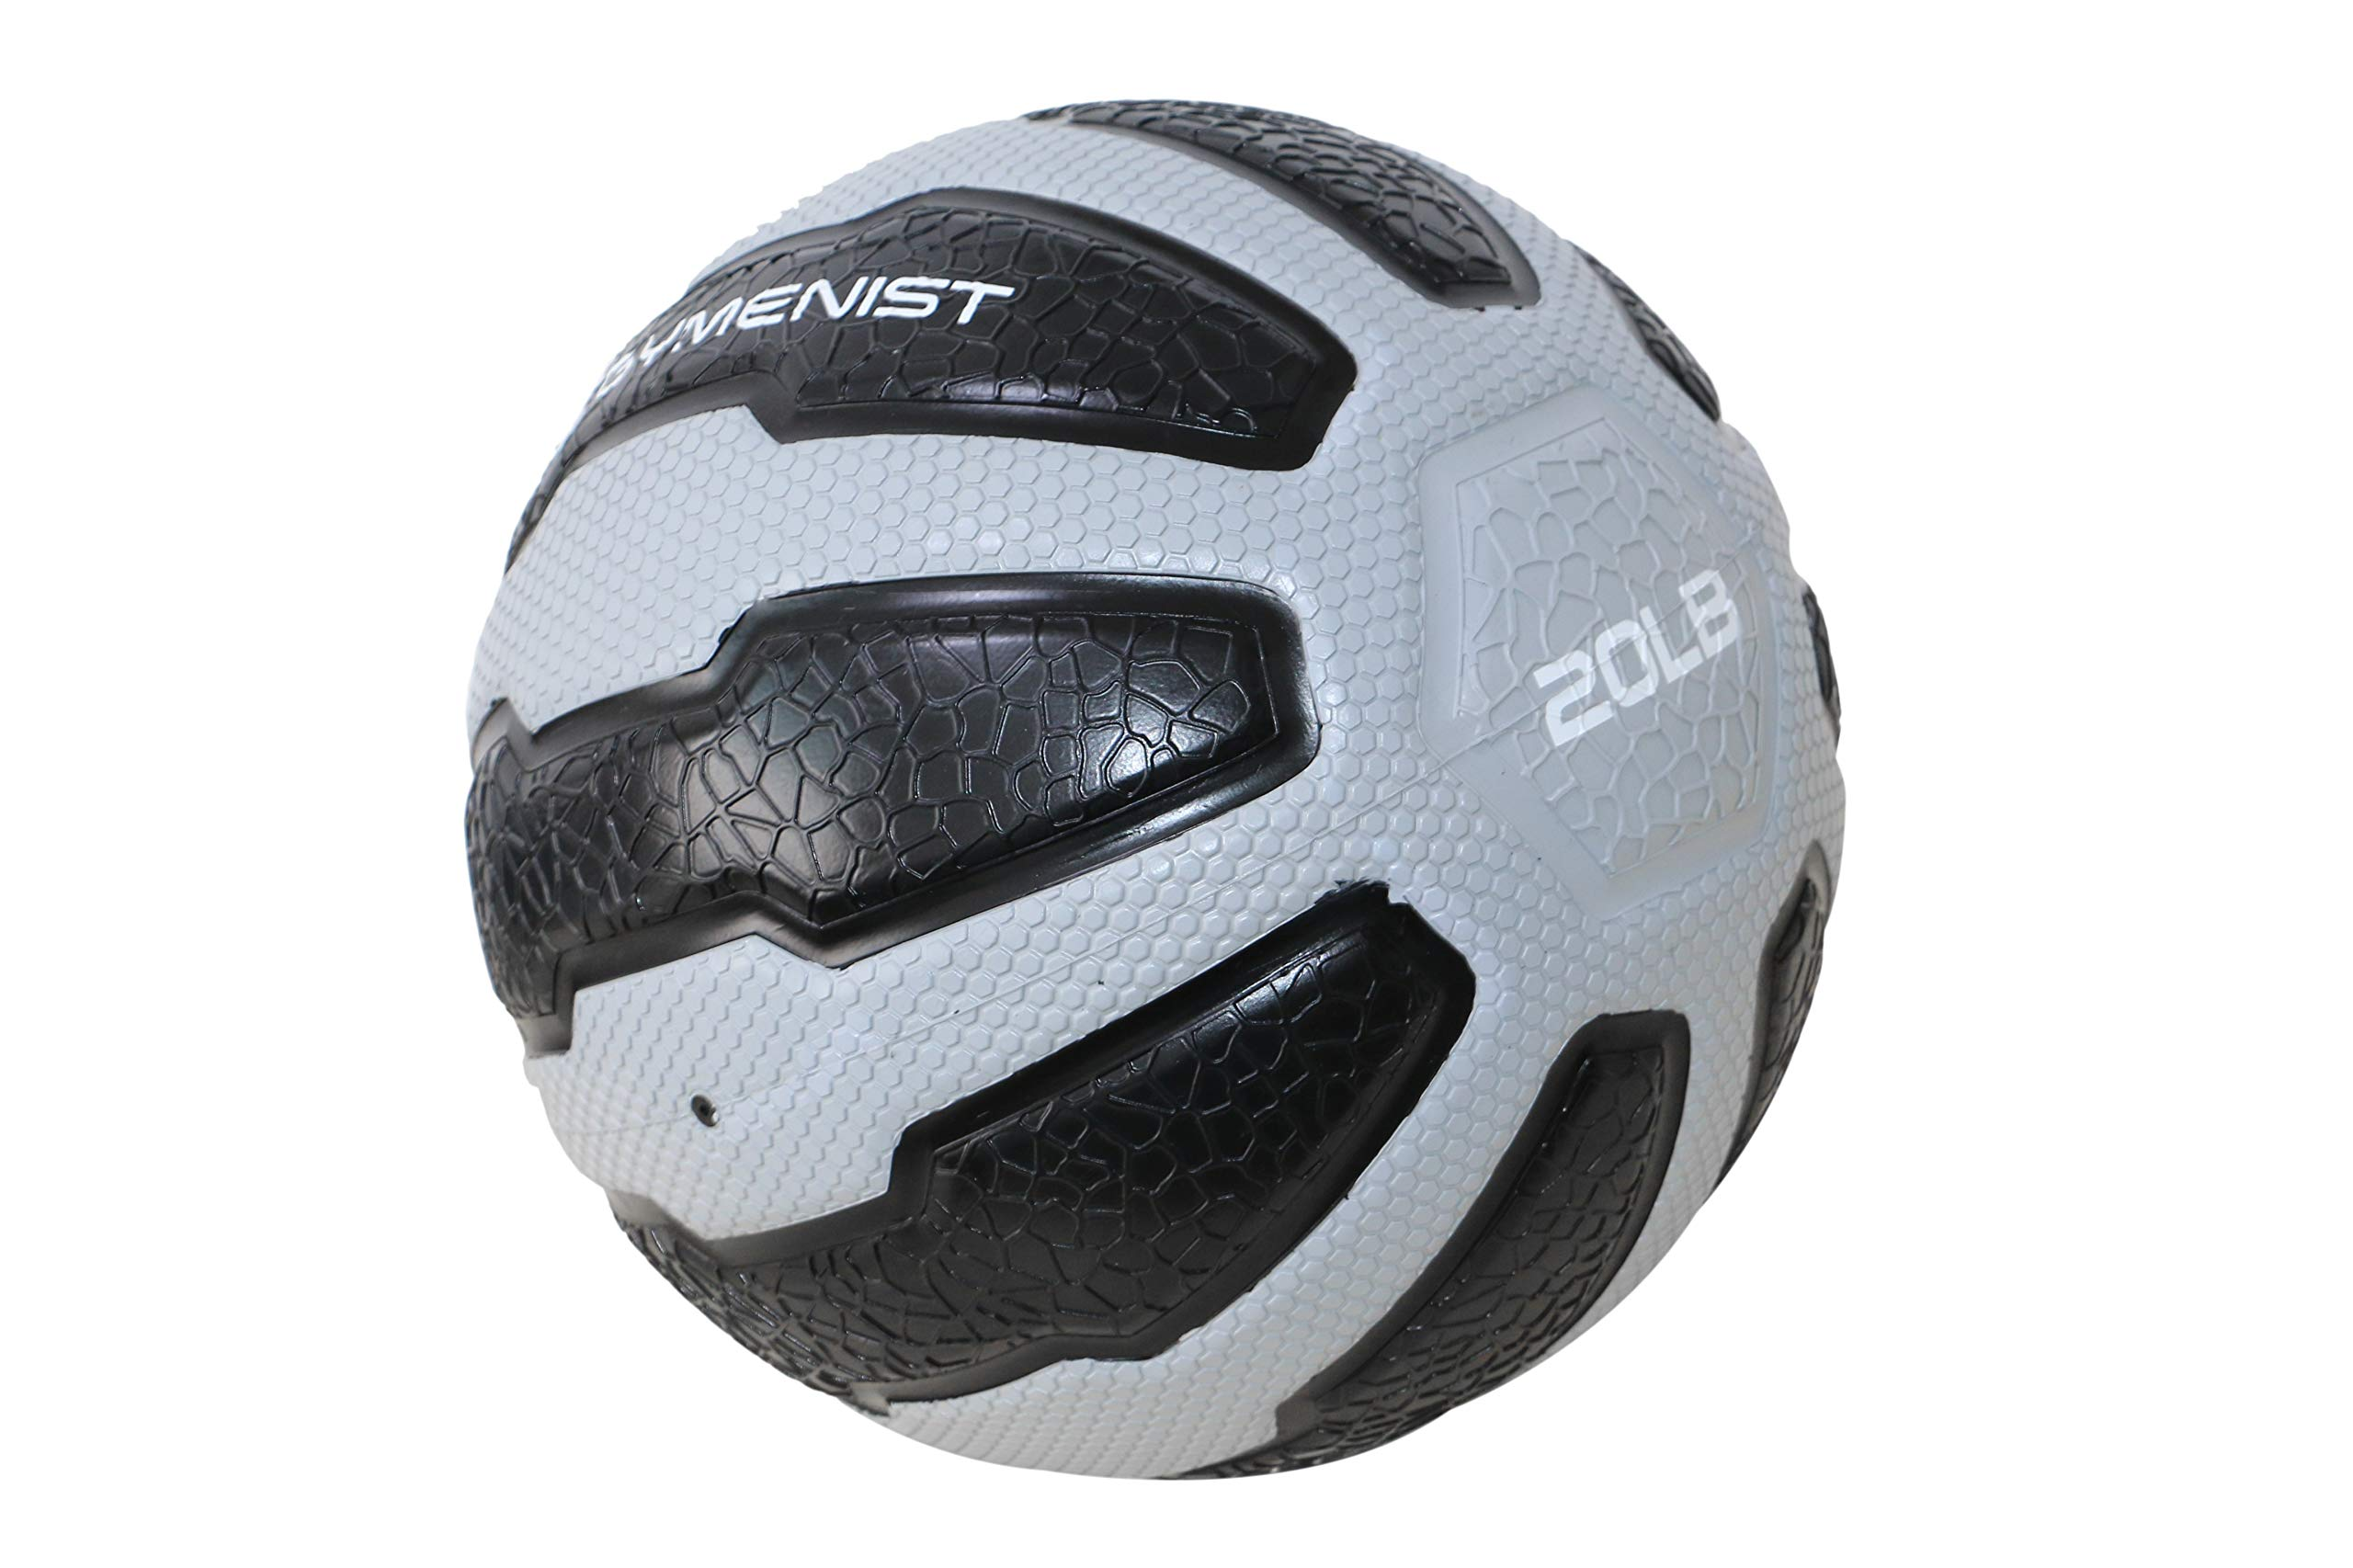 GYMENIST Rubber Medicine Ball with Textured Grip, Available in 9 Sizes, 2-20 LB, Weighted Fitness Balls,Improves Balance and Flexibility - Great for Gym, Workouts, (20 LB (Grey-Black))